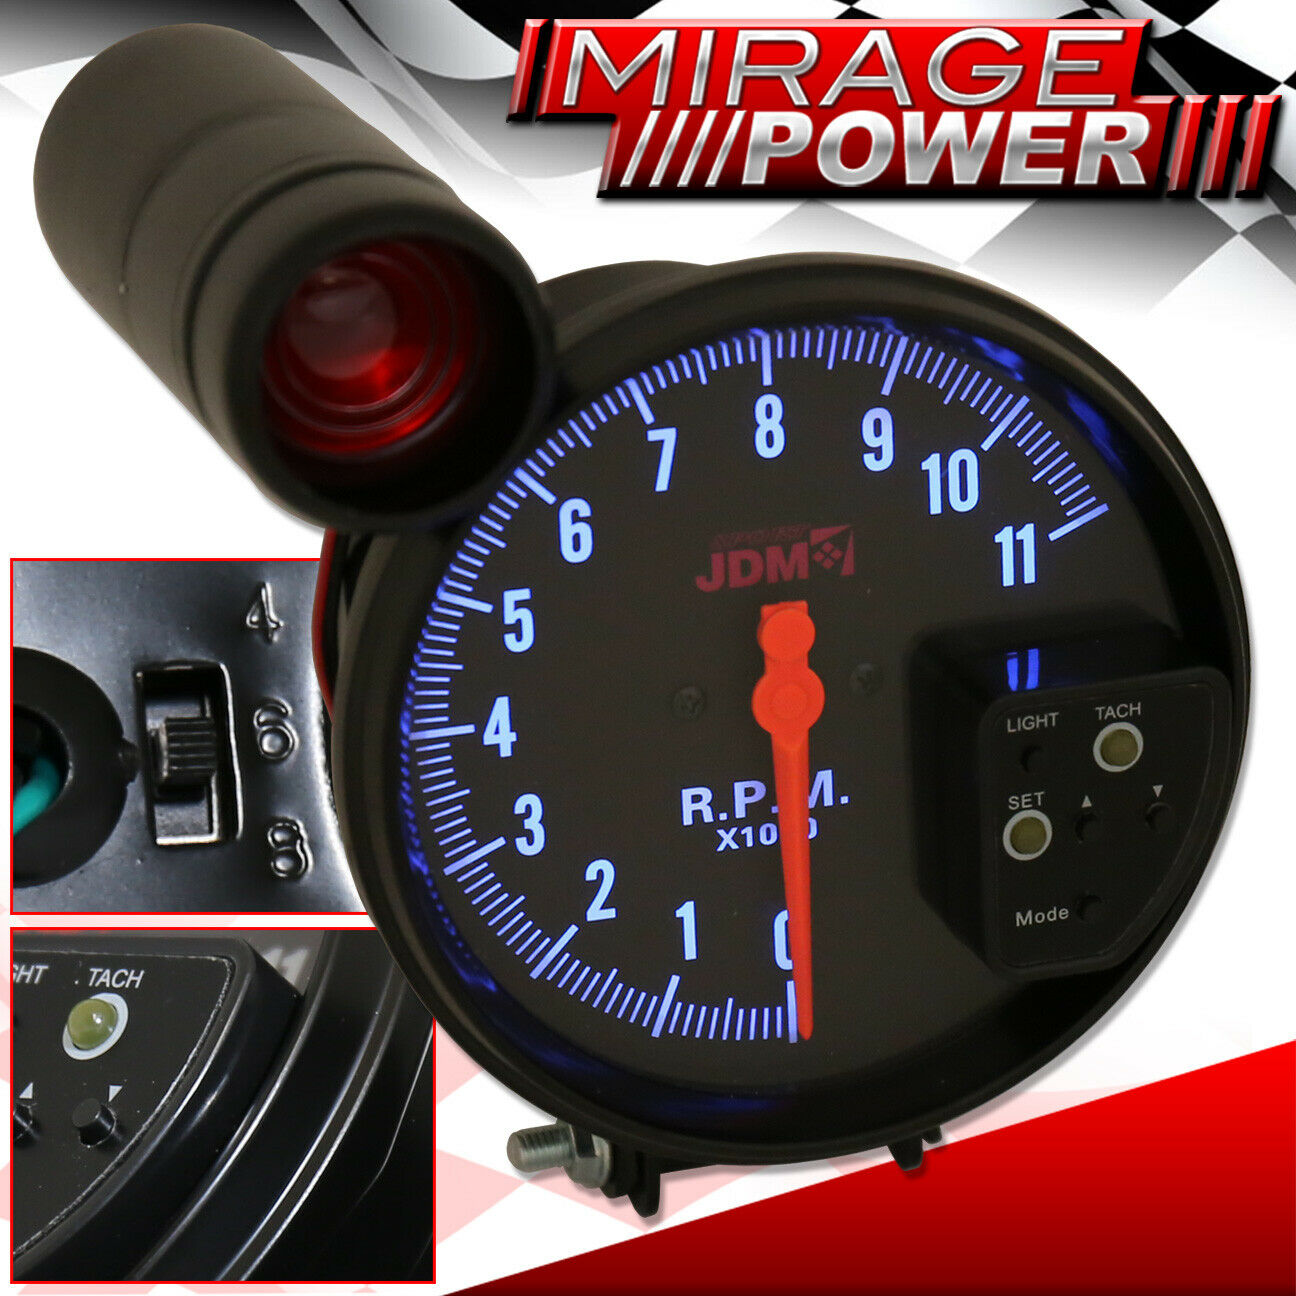 Jdm Integra Sport Tachometer Wiring Diagram Electrical Super Tach 2 Library Of 5 All